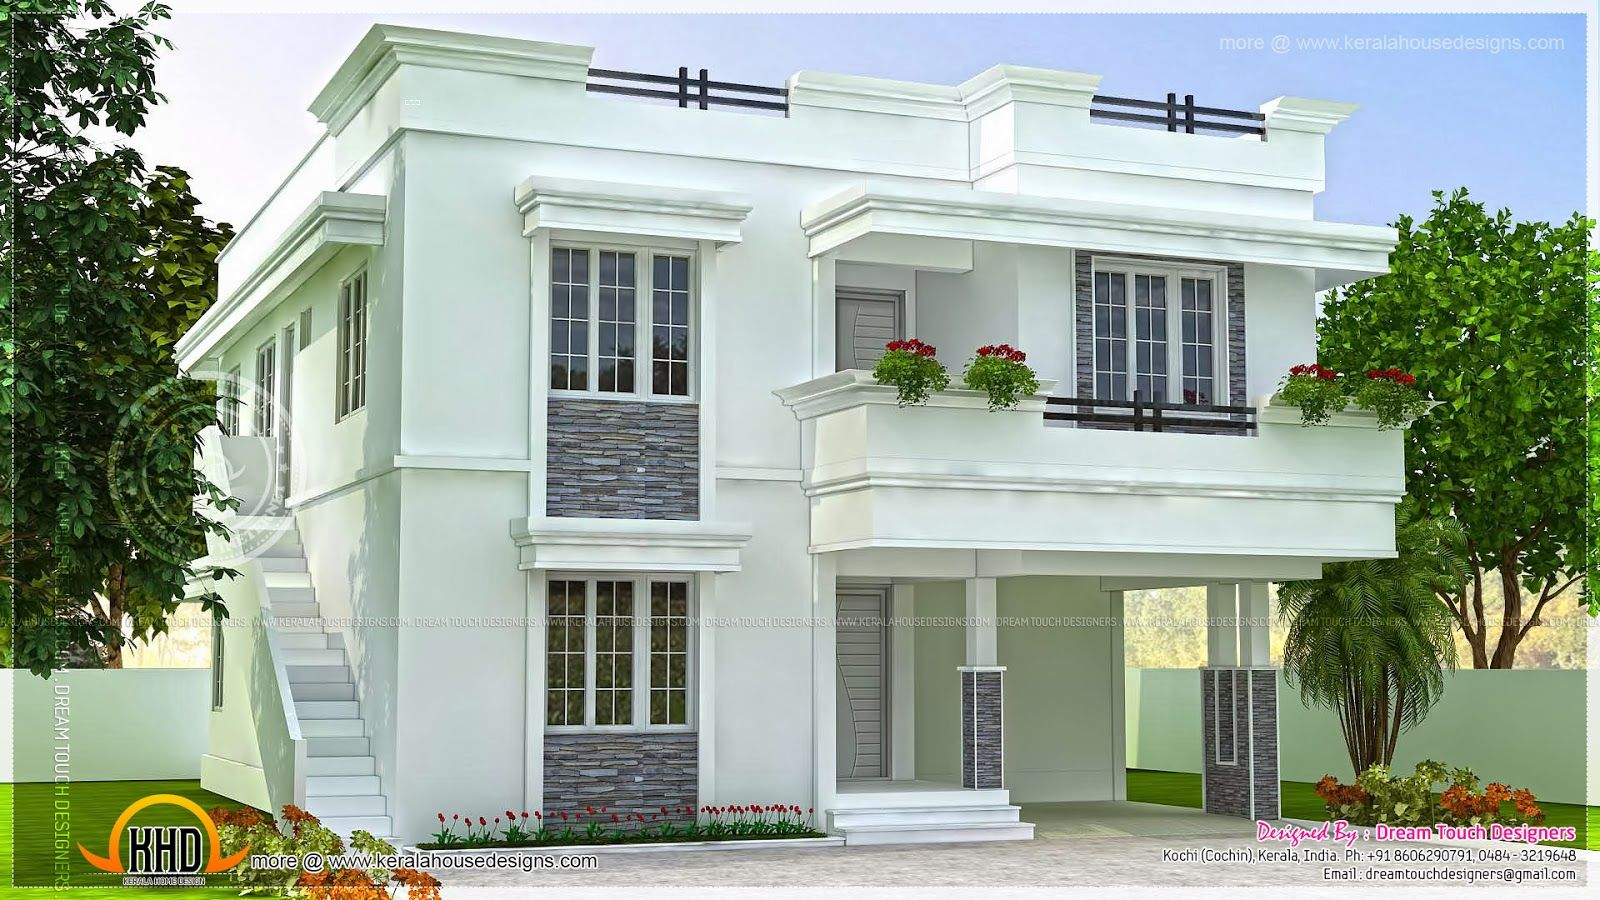 Modern beautiful home modern beautiful home design indian for Best indian architectural affordable home designs